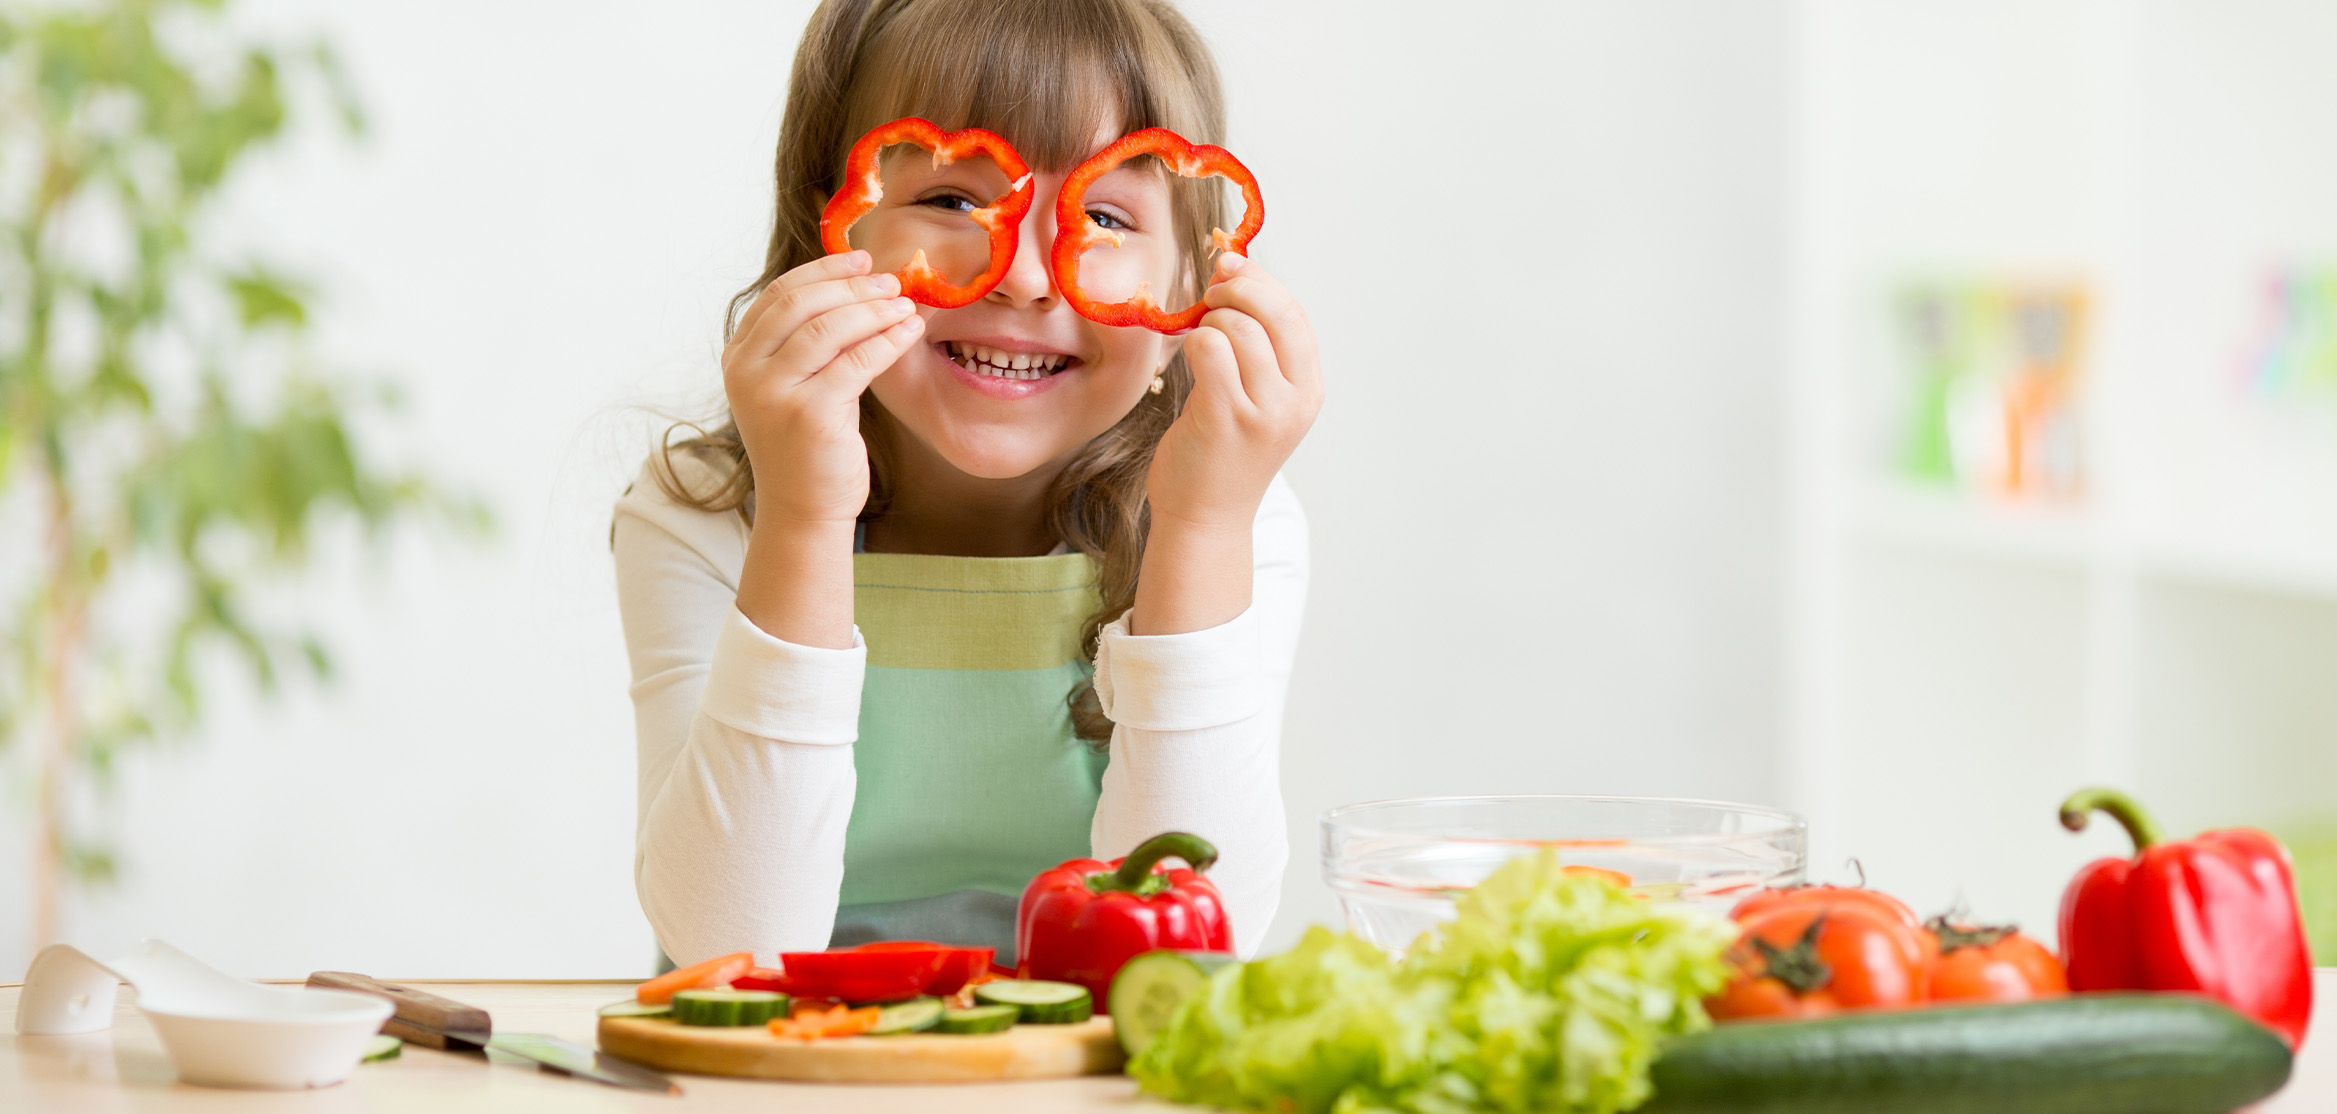 Healthy Meal Prep Ideas for Kids